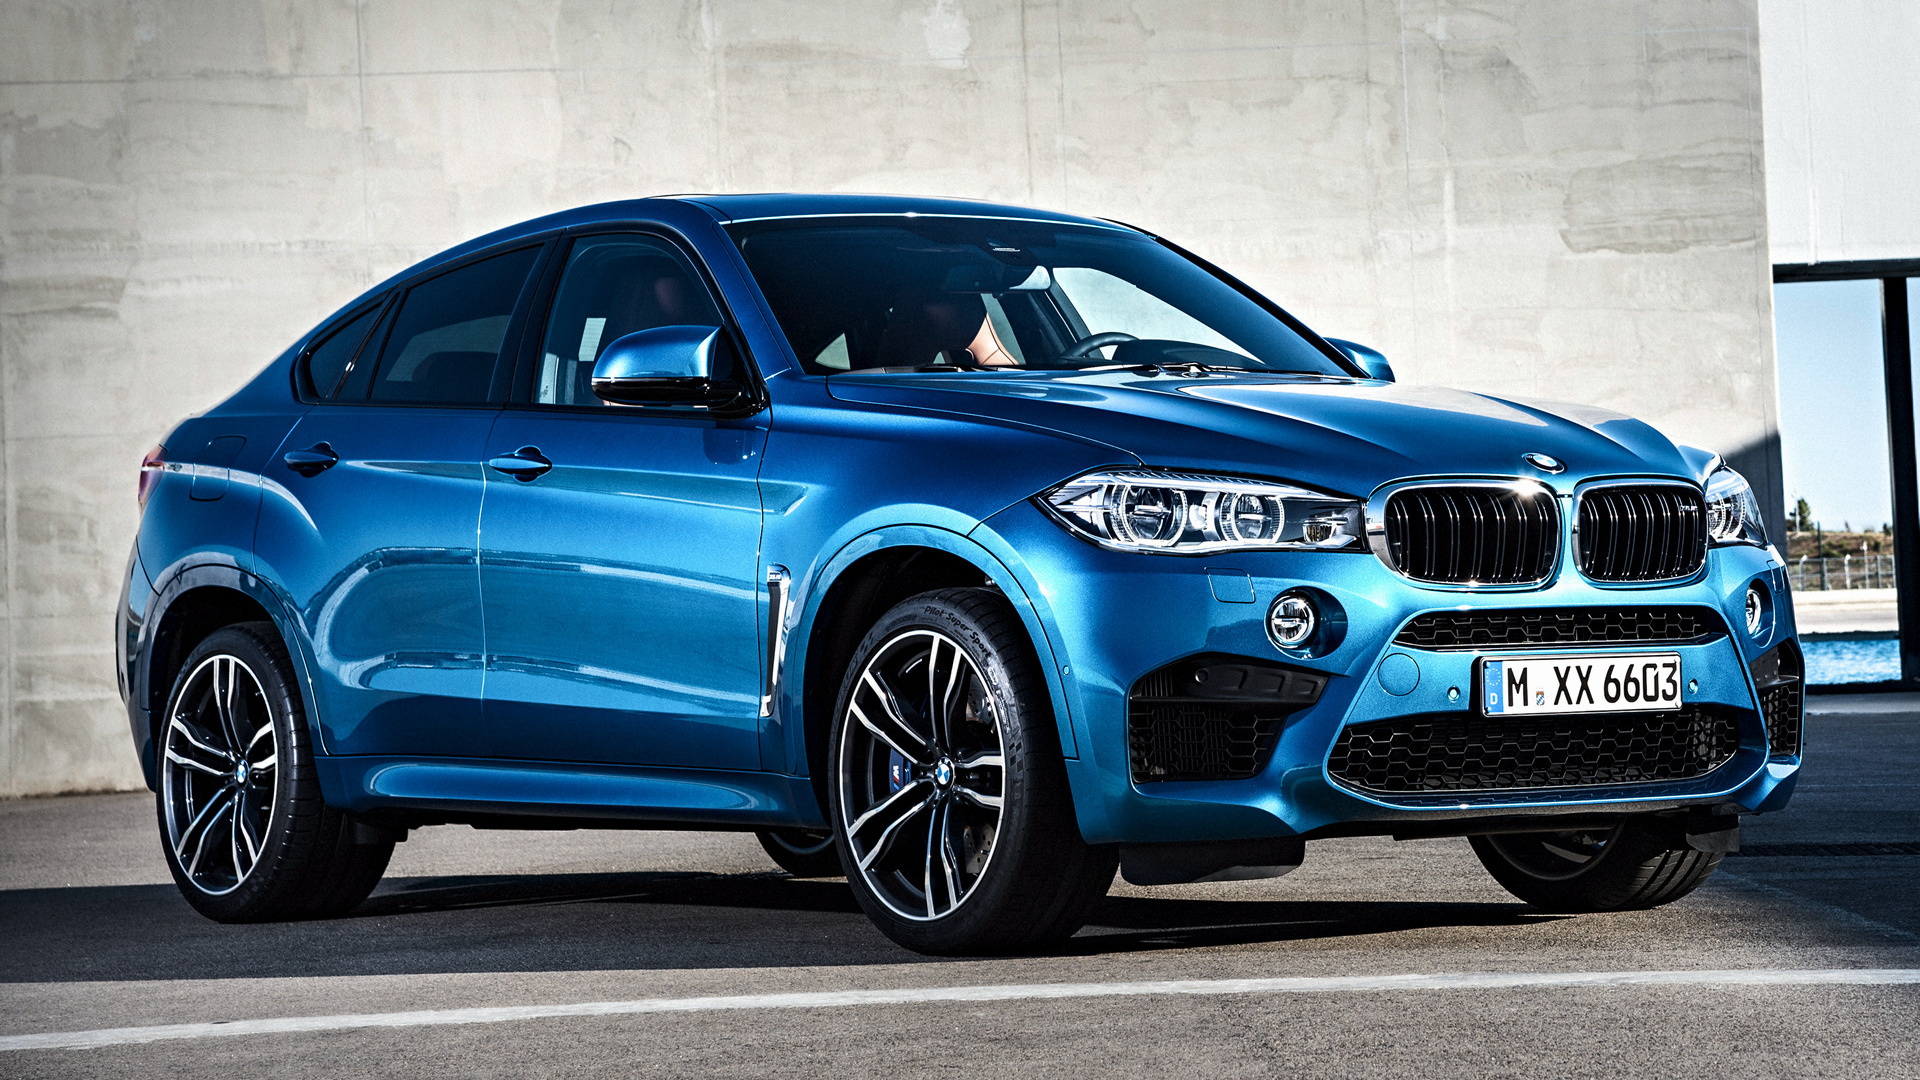 BMW X6 M 2015 Wallpapers and HD Images 1920x1080